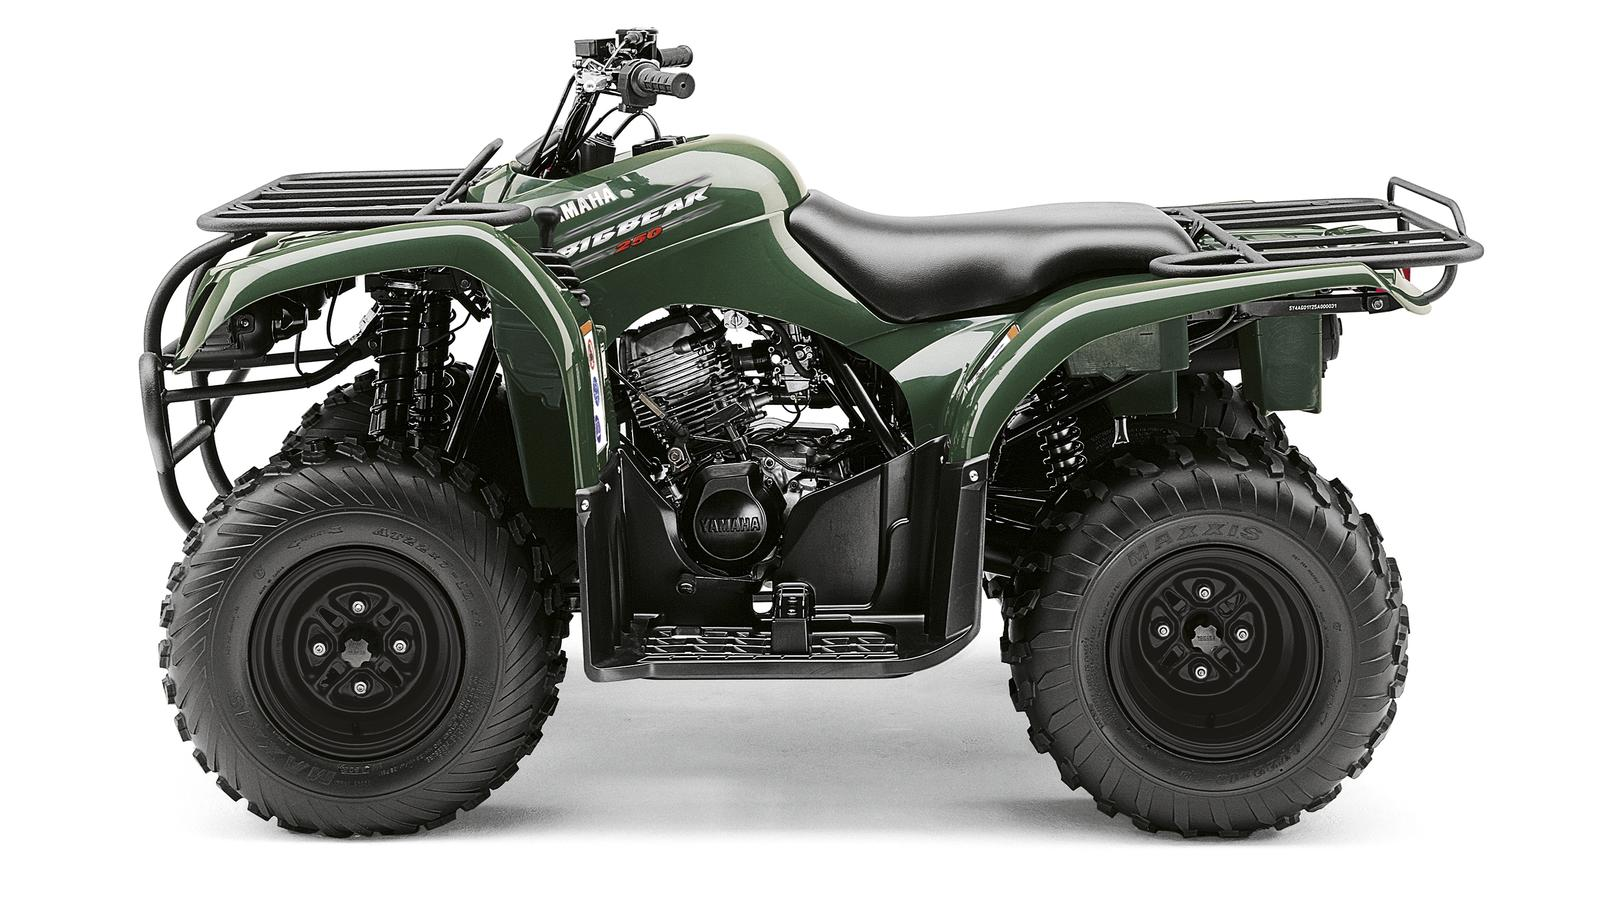 YAMAHA Big Bear 250  2011 photo 3